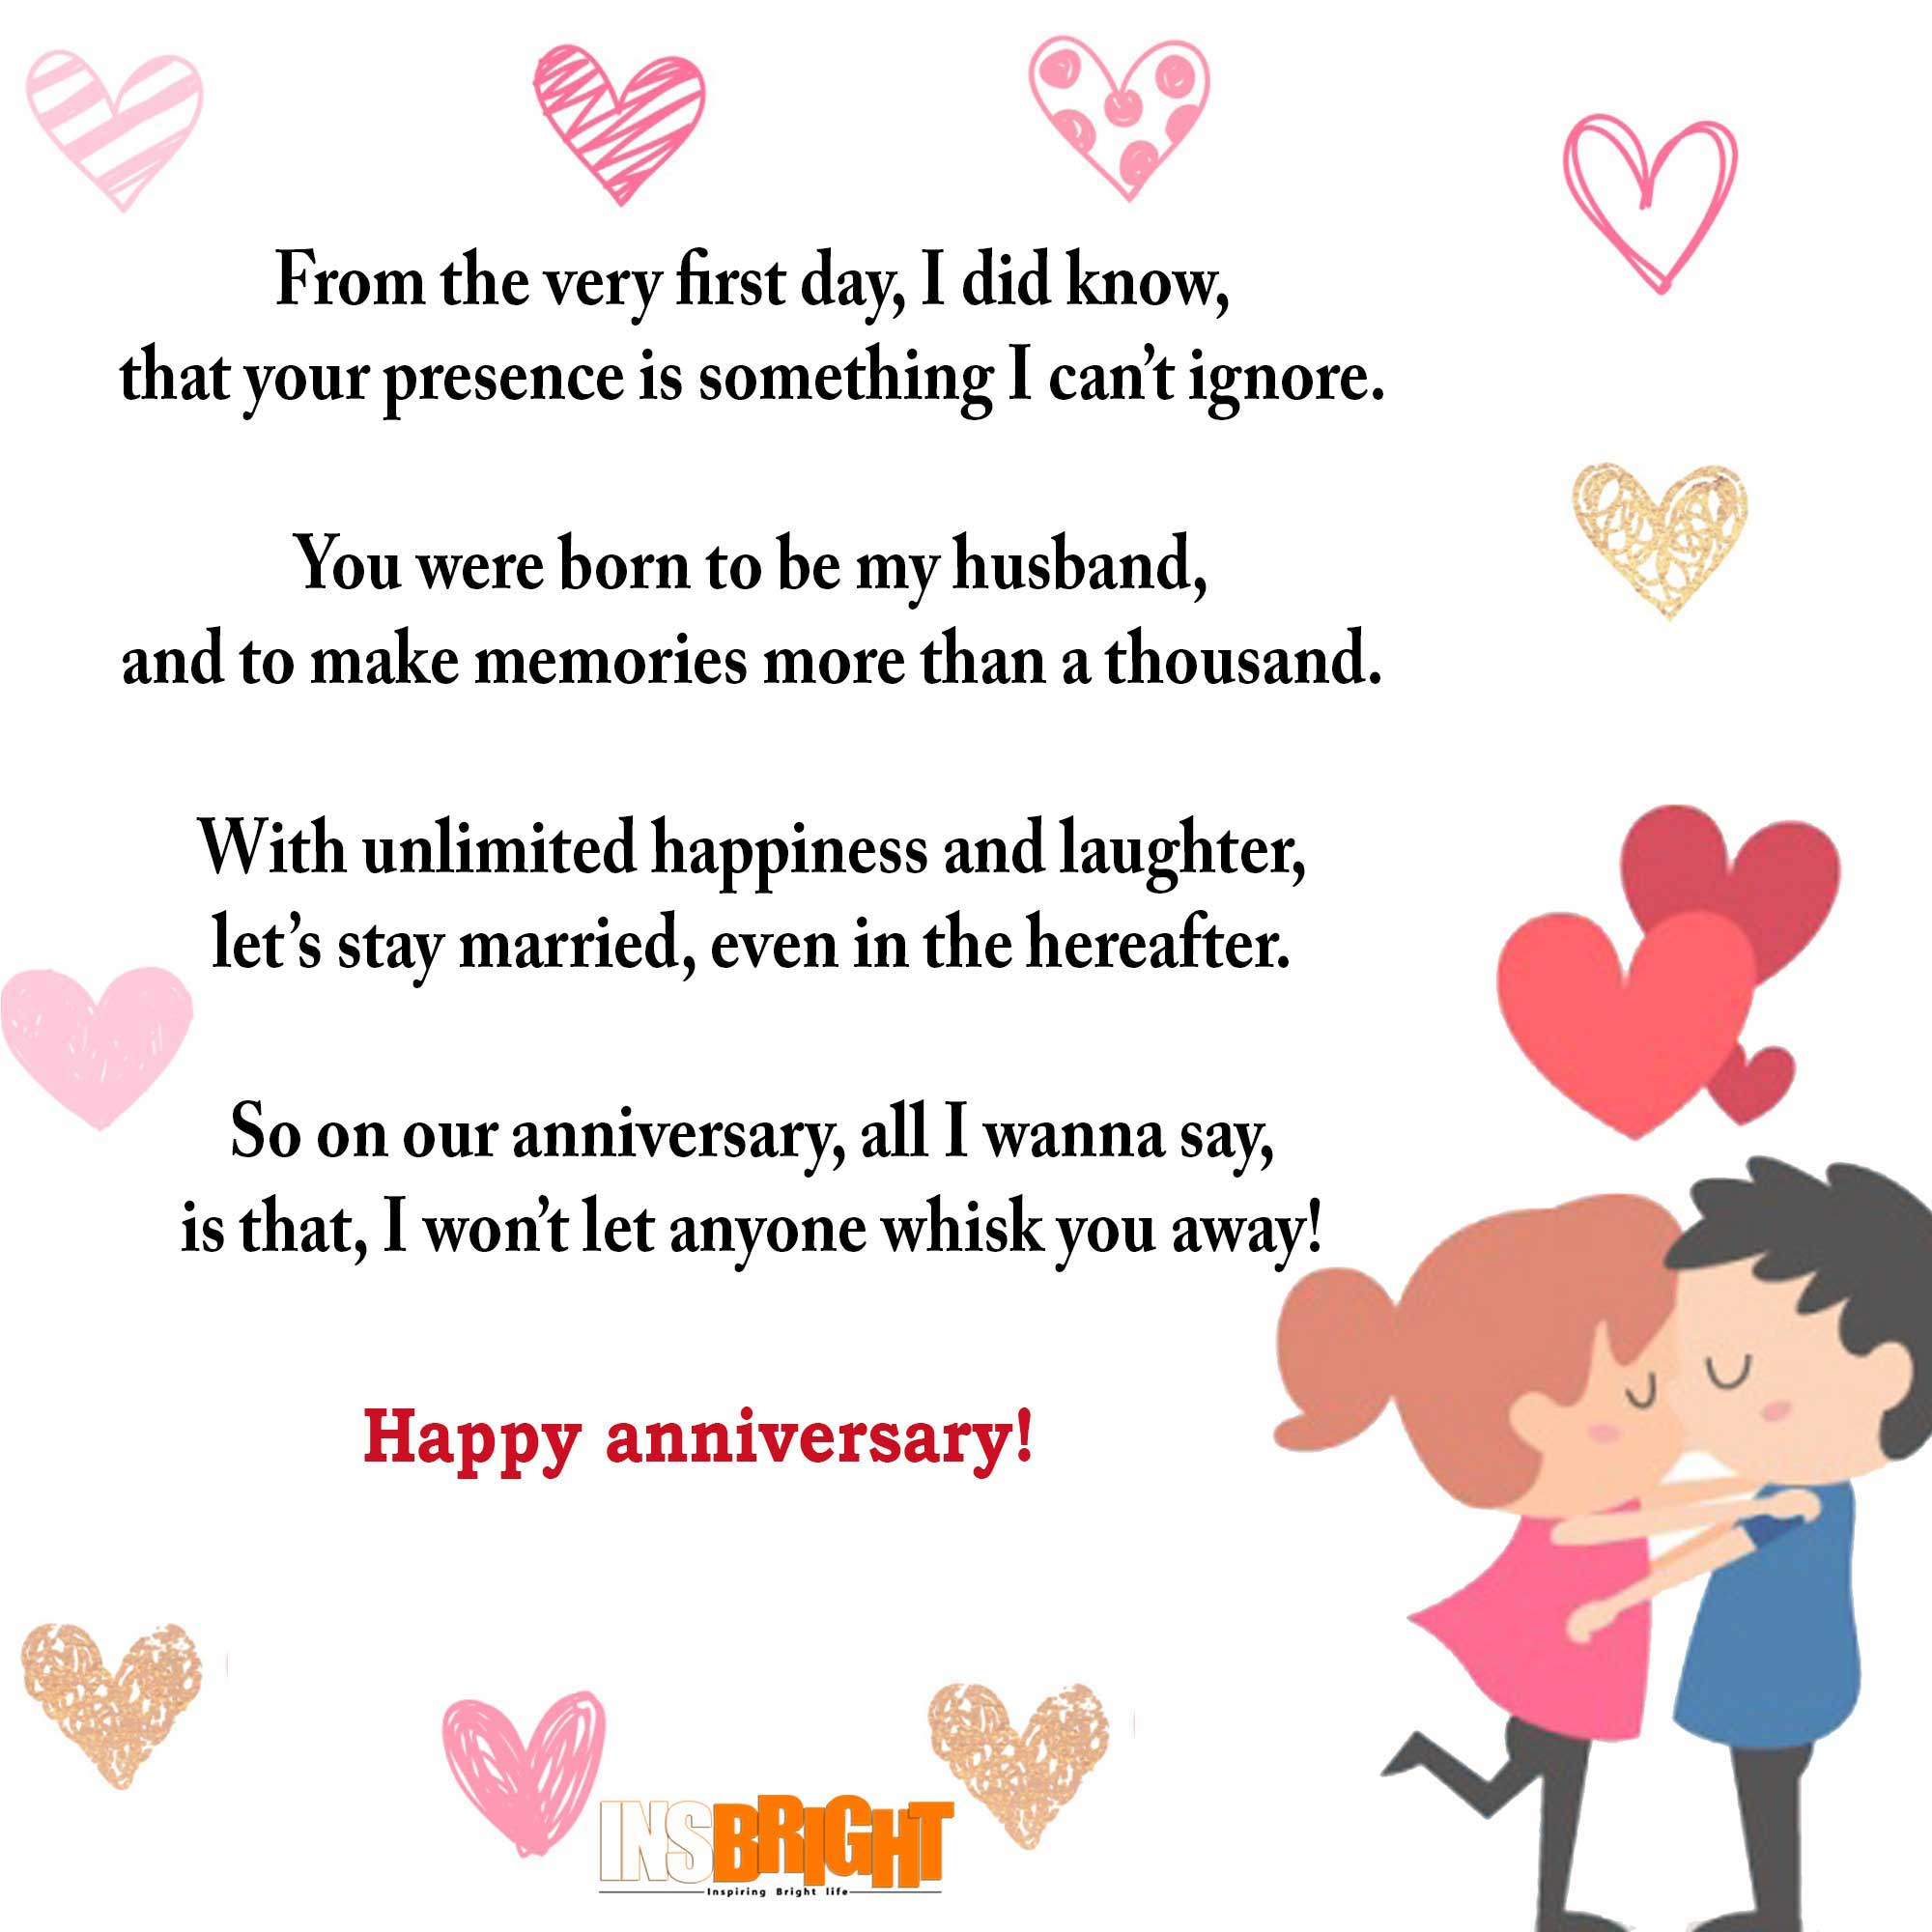 mJoTmm anniversary poems for husband happy valentines day you